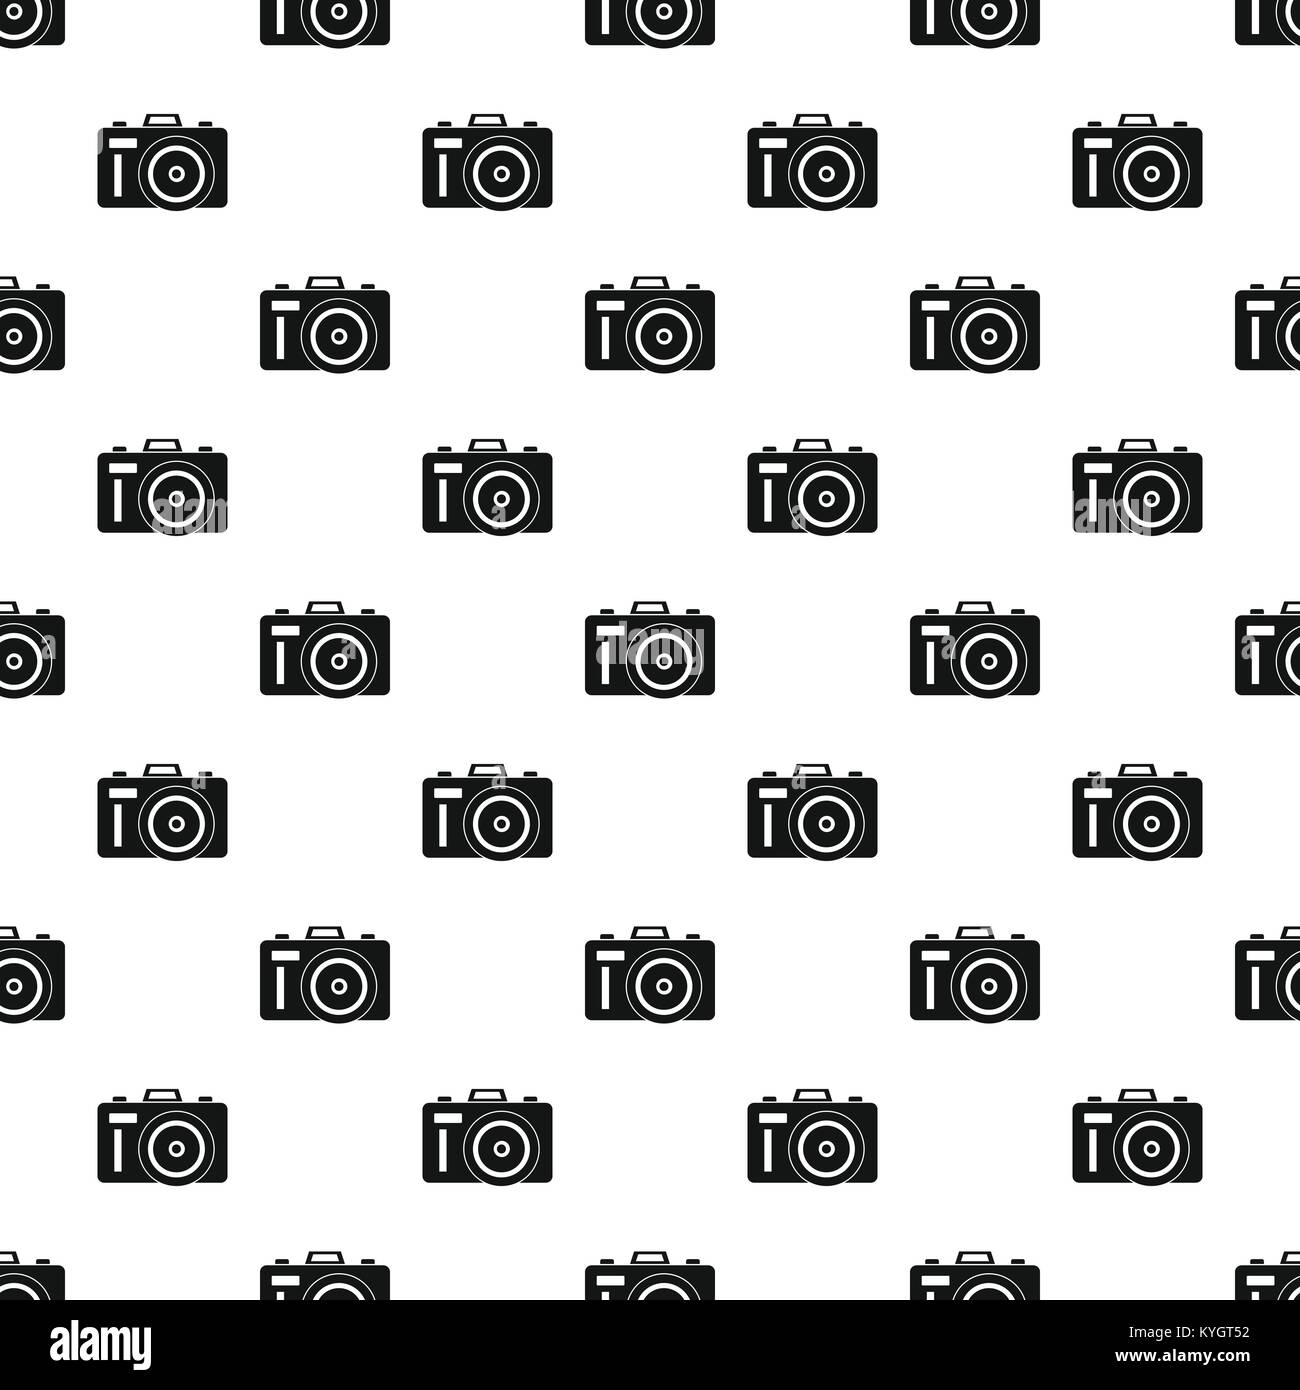 Vector pattern Photocamera Photo Stock